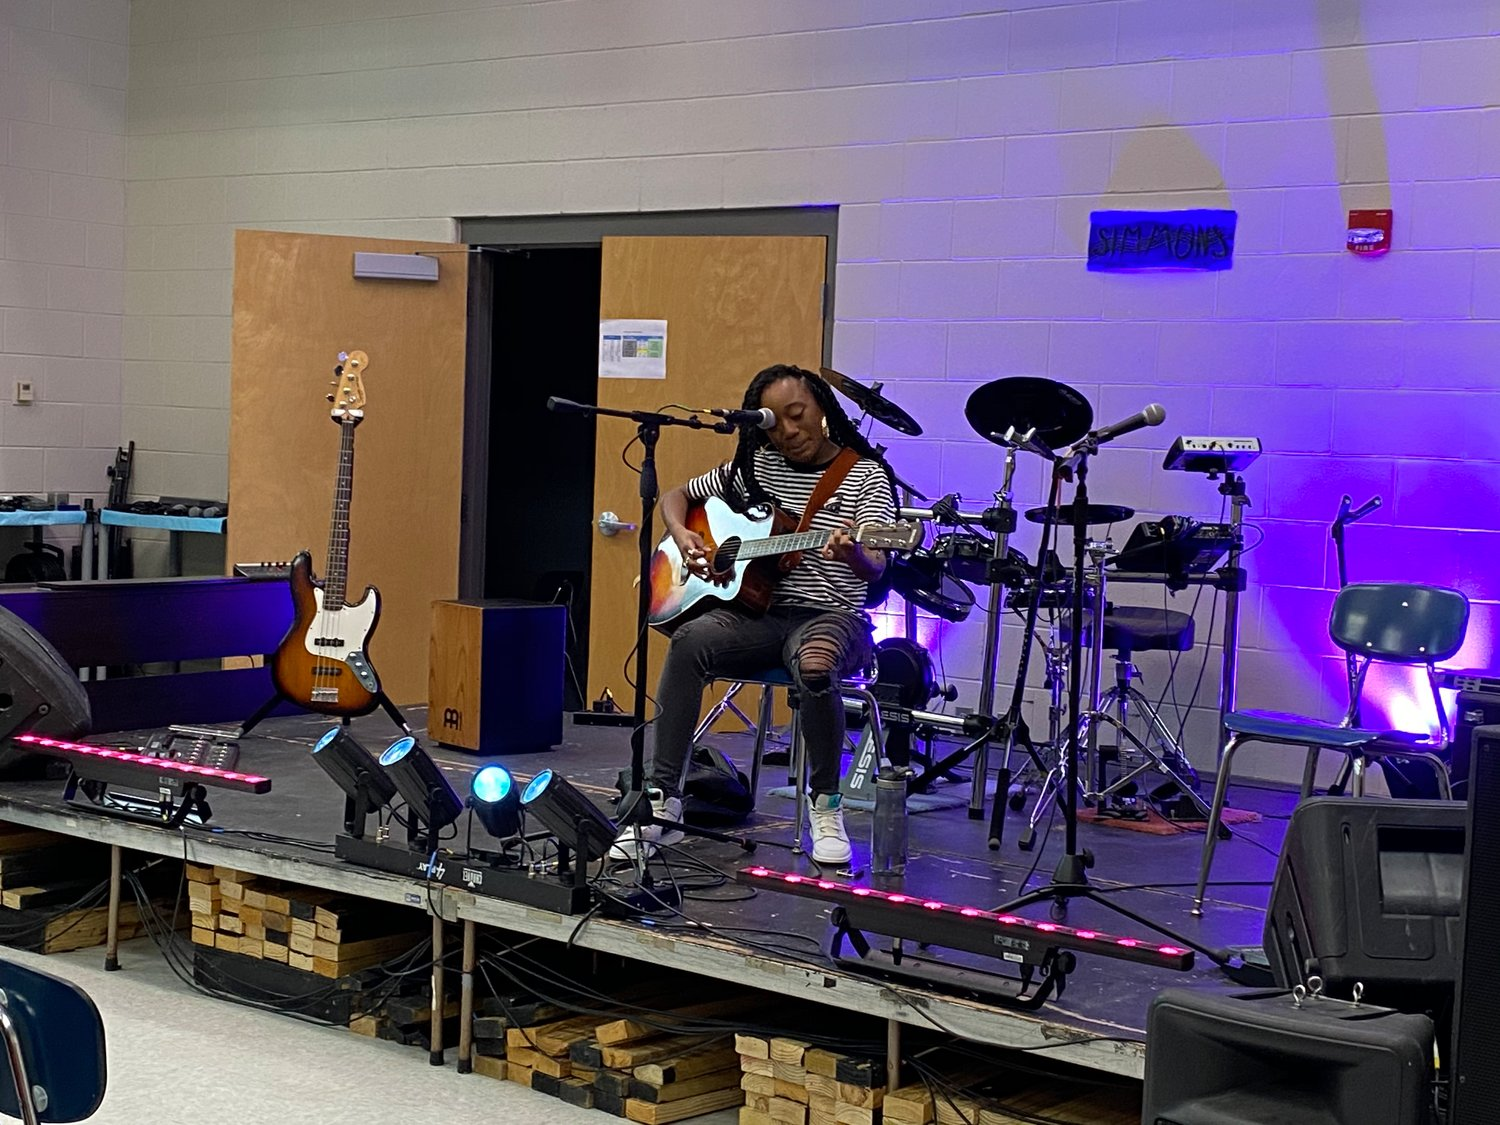 Gulf Shores High School has an existing music lab and music technology course taught by Tim Simmons. The classroom has a small stage, sound and lighting equipment where students learn the basics and sometimes host guest artists.